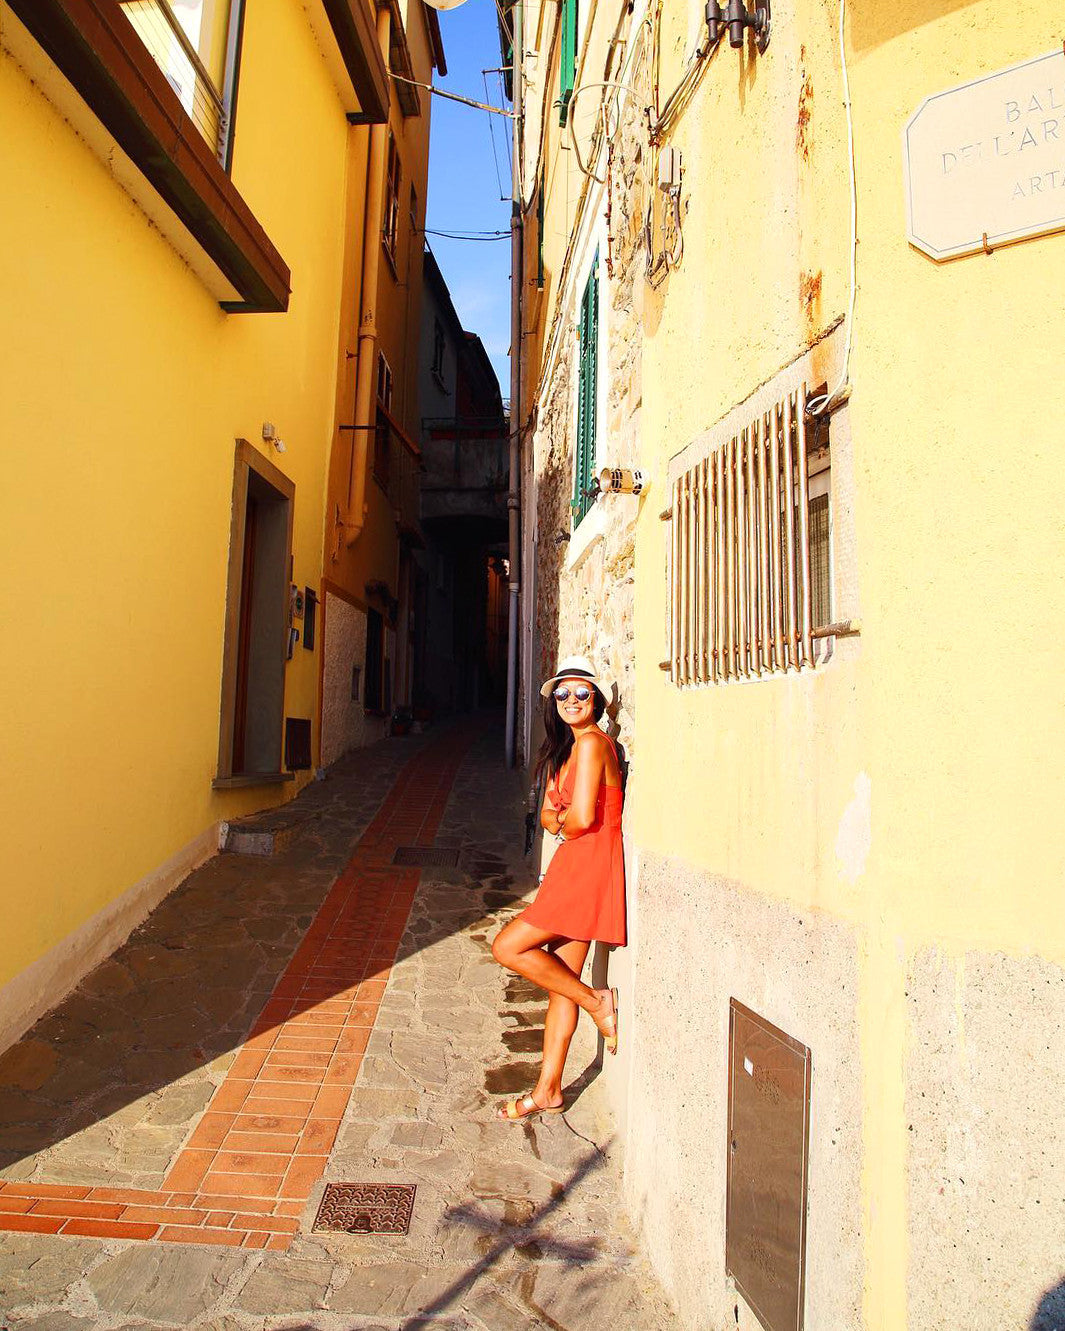 ESEMBLE Traveler Series Natasha Huang Smith, Fashion PR Consultant & Travel Writer Manarola, Italy